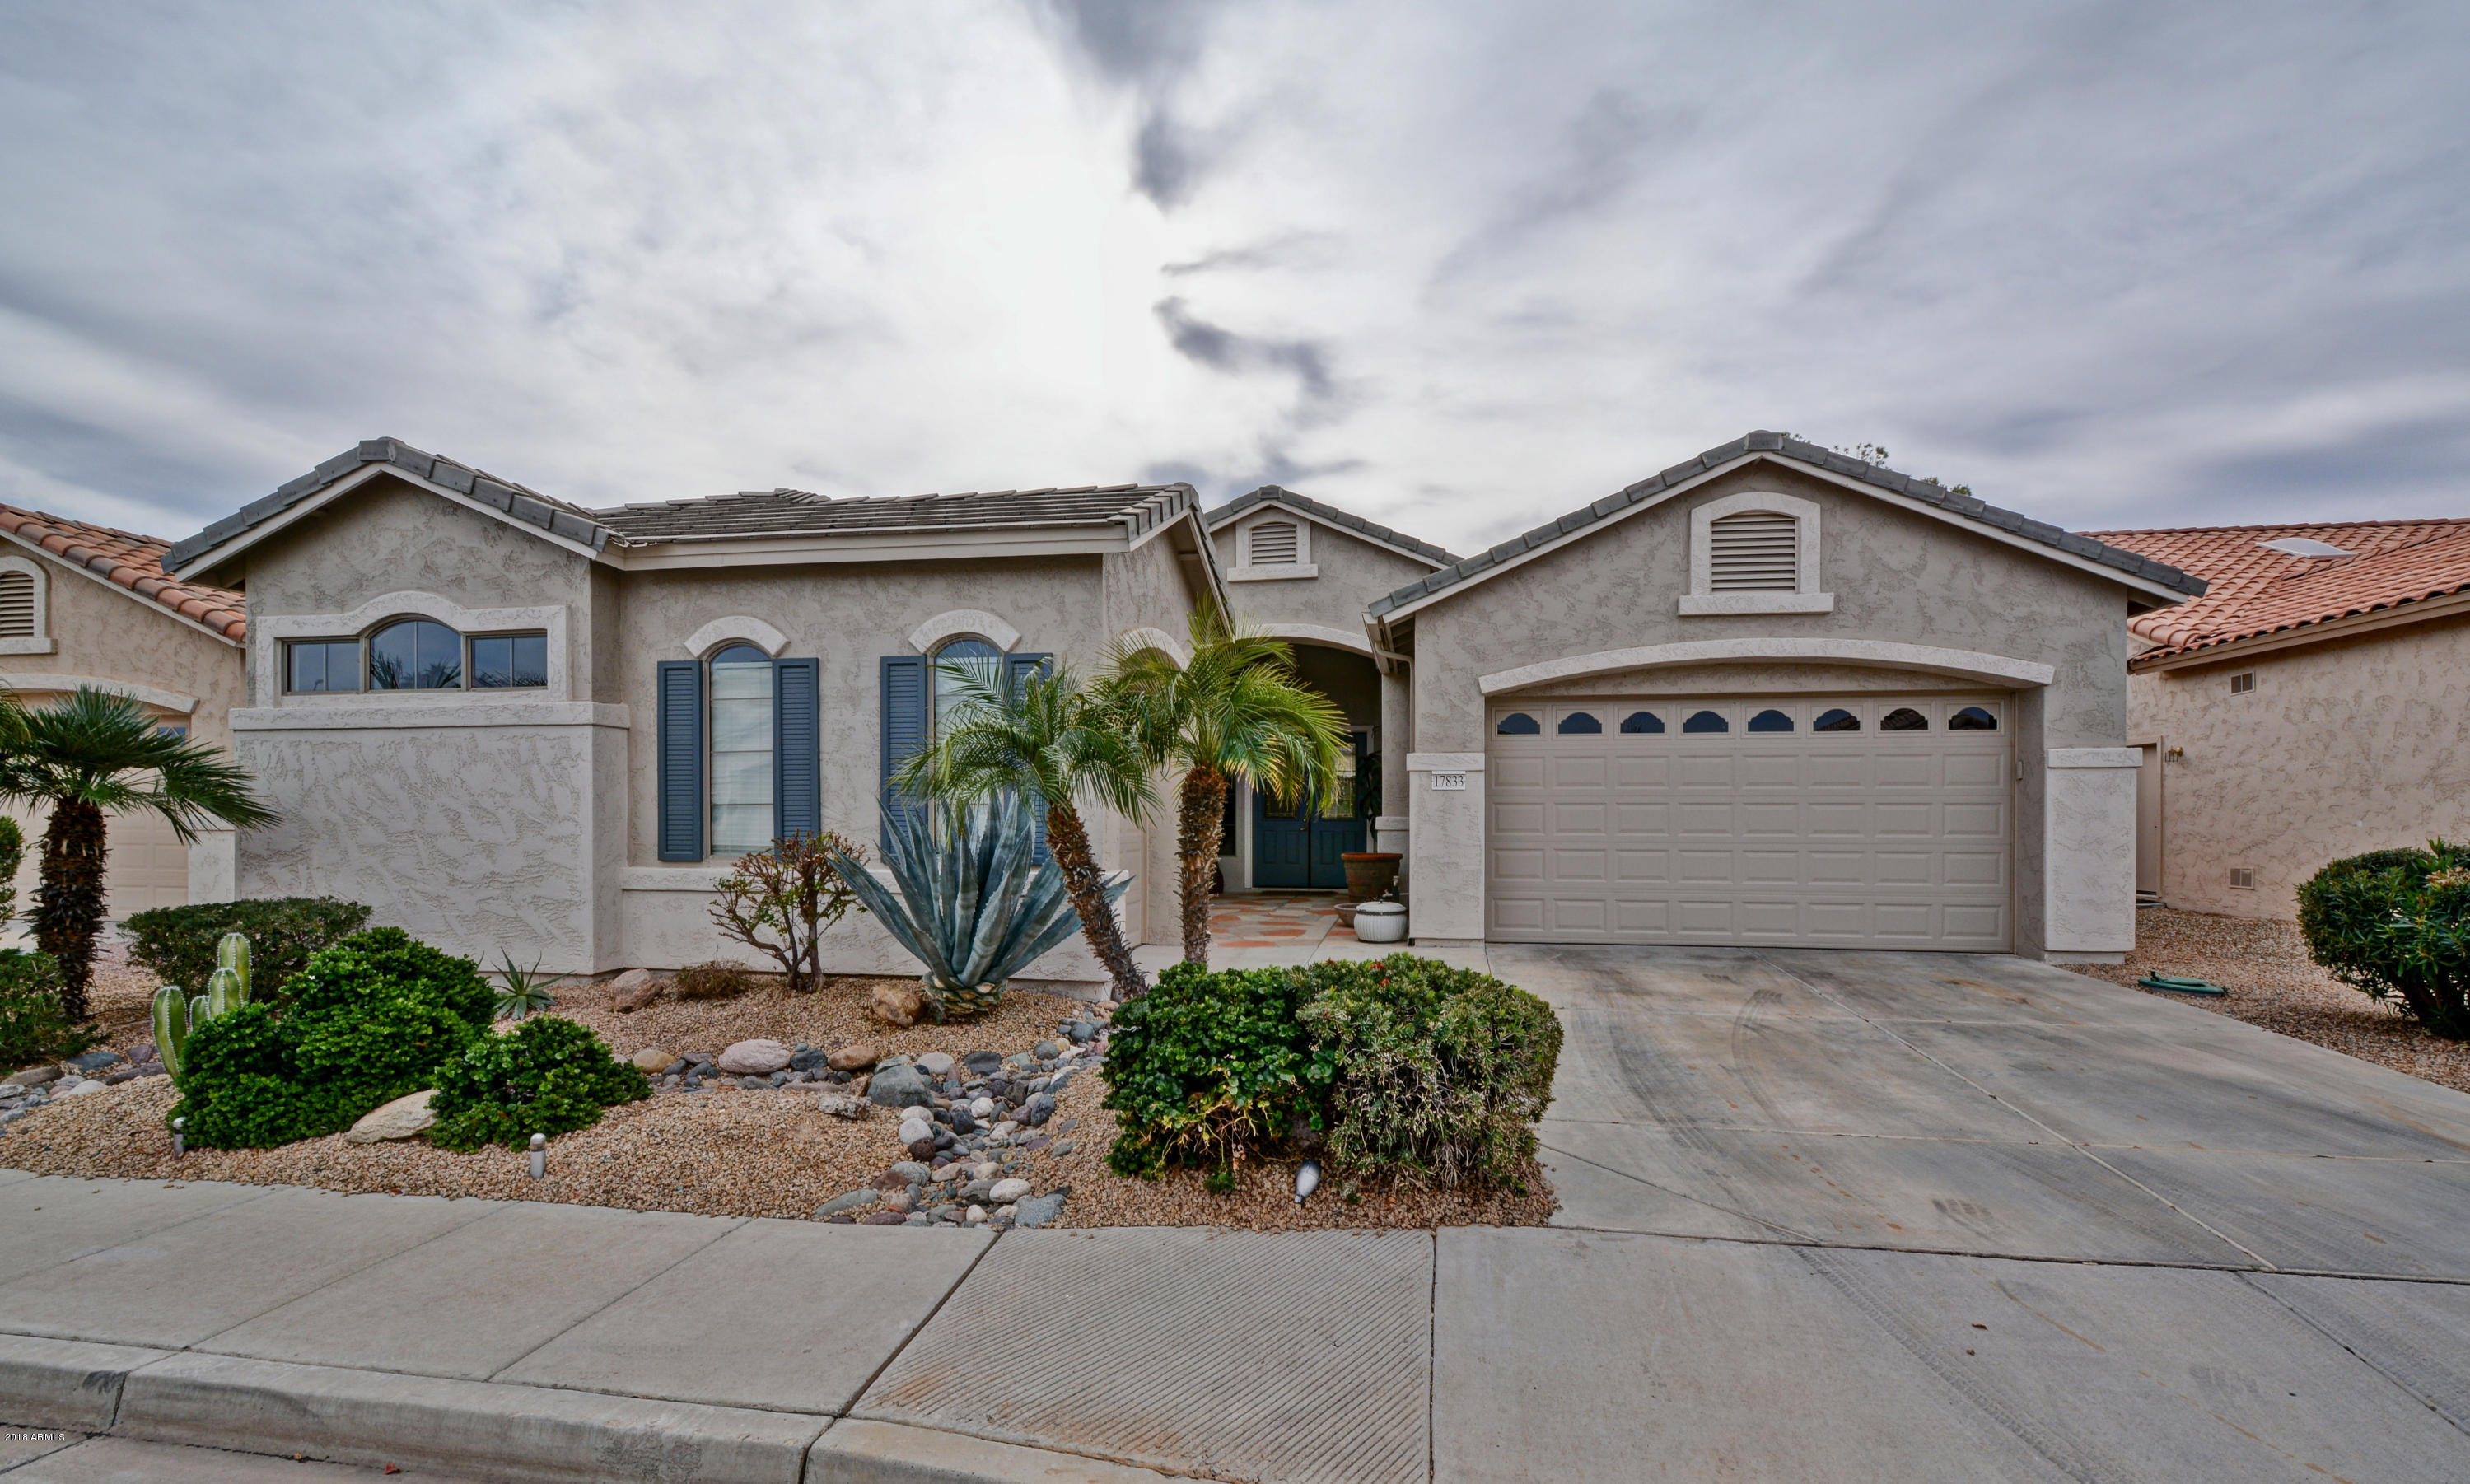 Photo of 17833 W SPENCER Drive, Surprise, AZ 85374